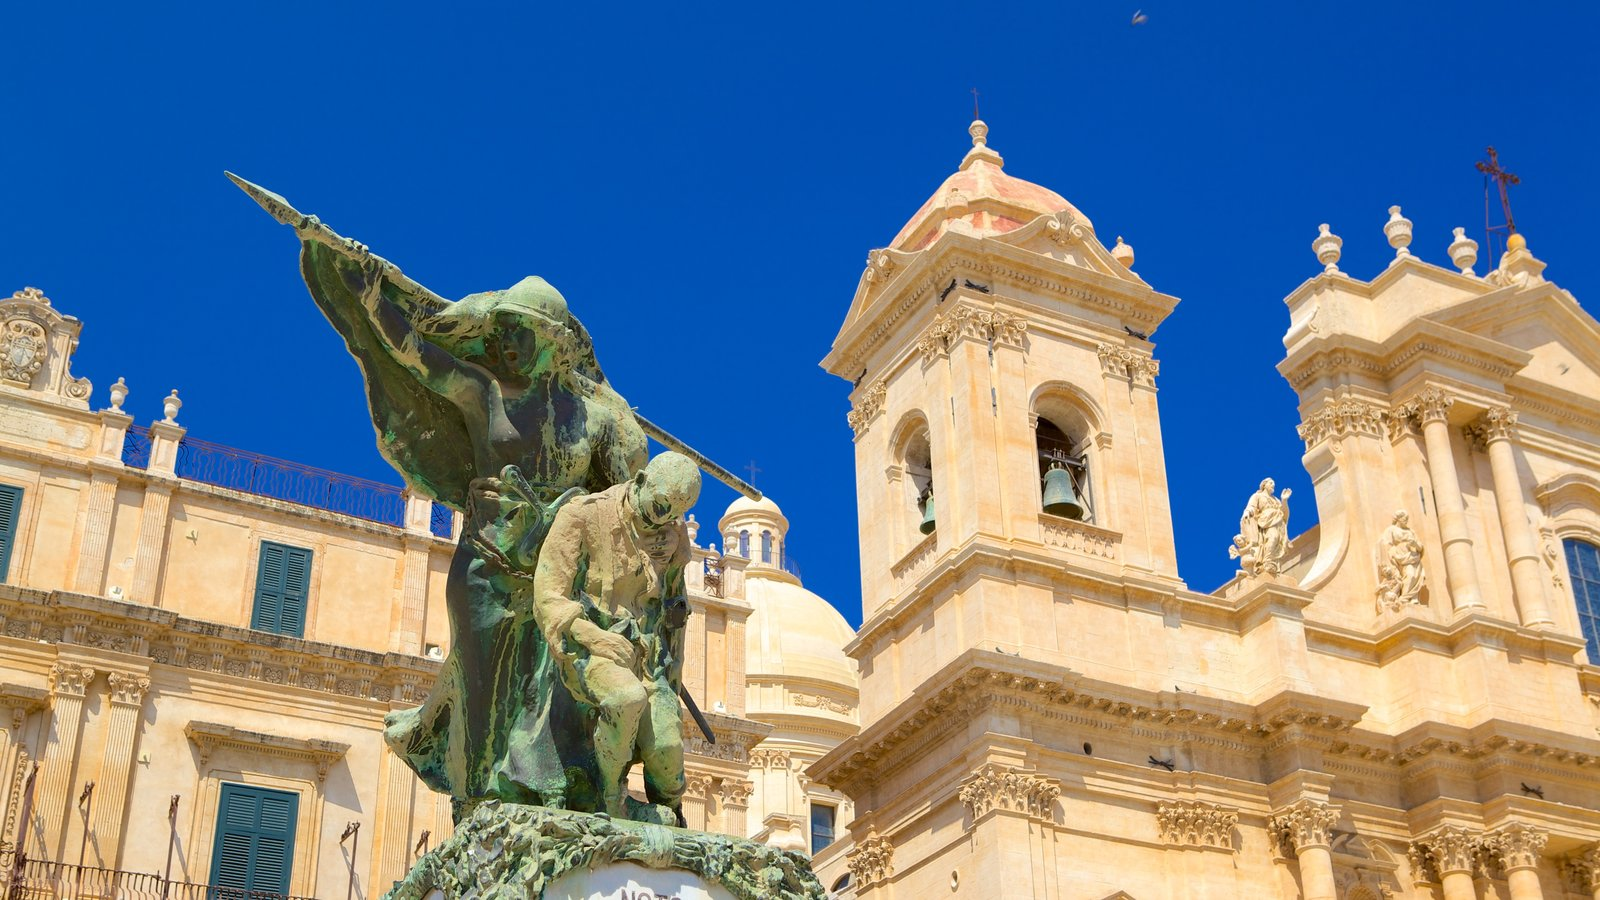 Cathedral of Noto featuring a church or cathedral, religious aspects and a statue or sculpture